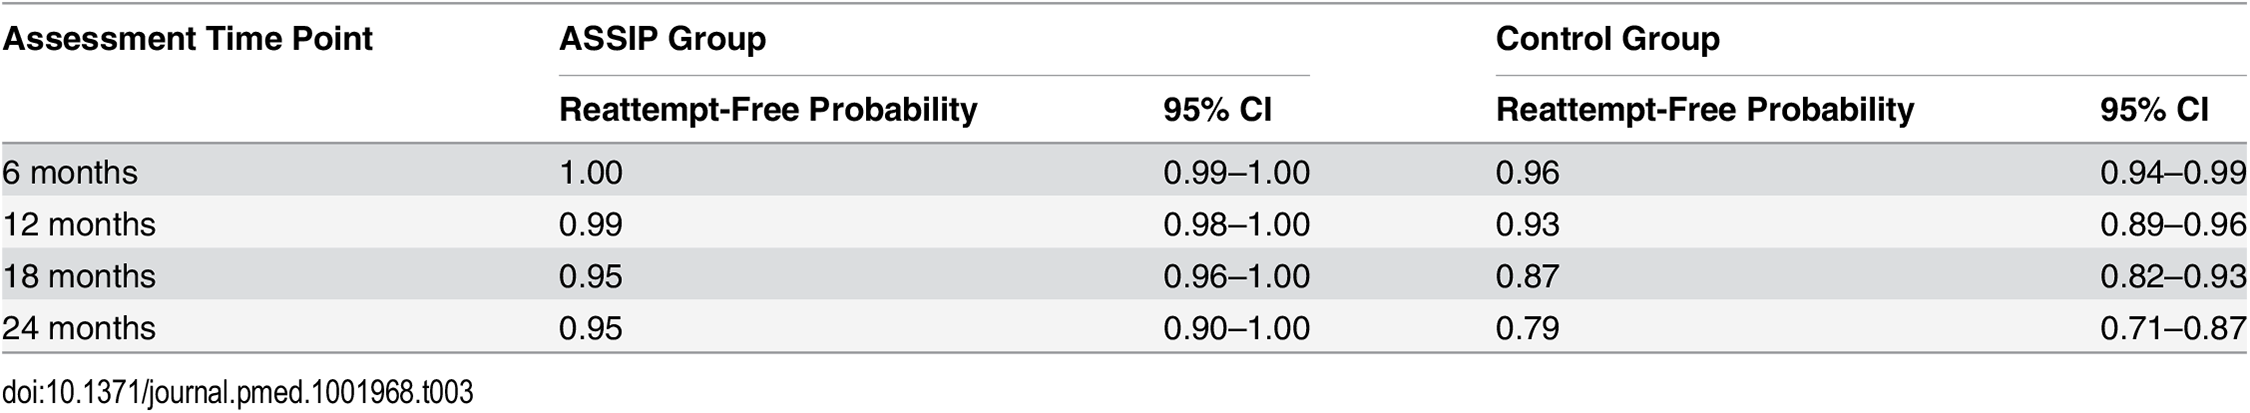 Estimated reattempt-free survival probability during 24-month follow-up.